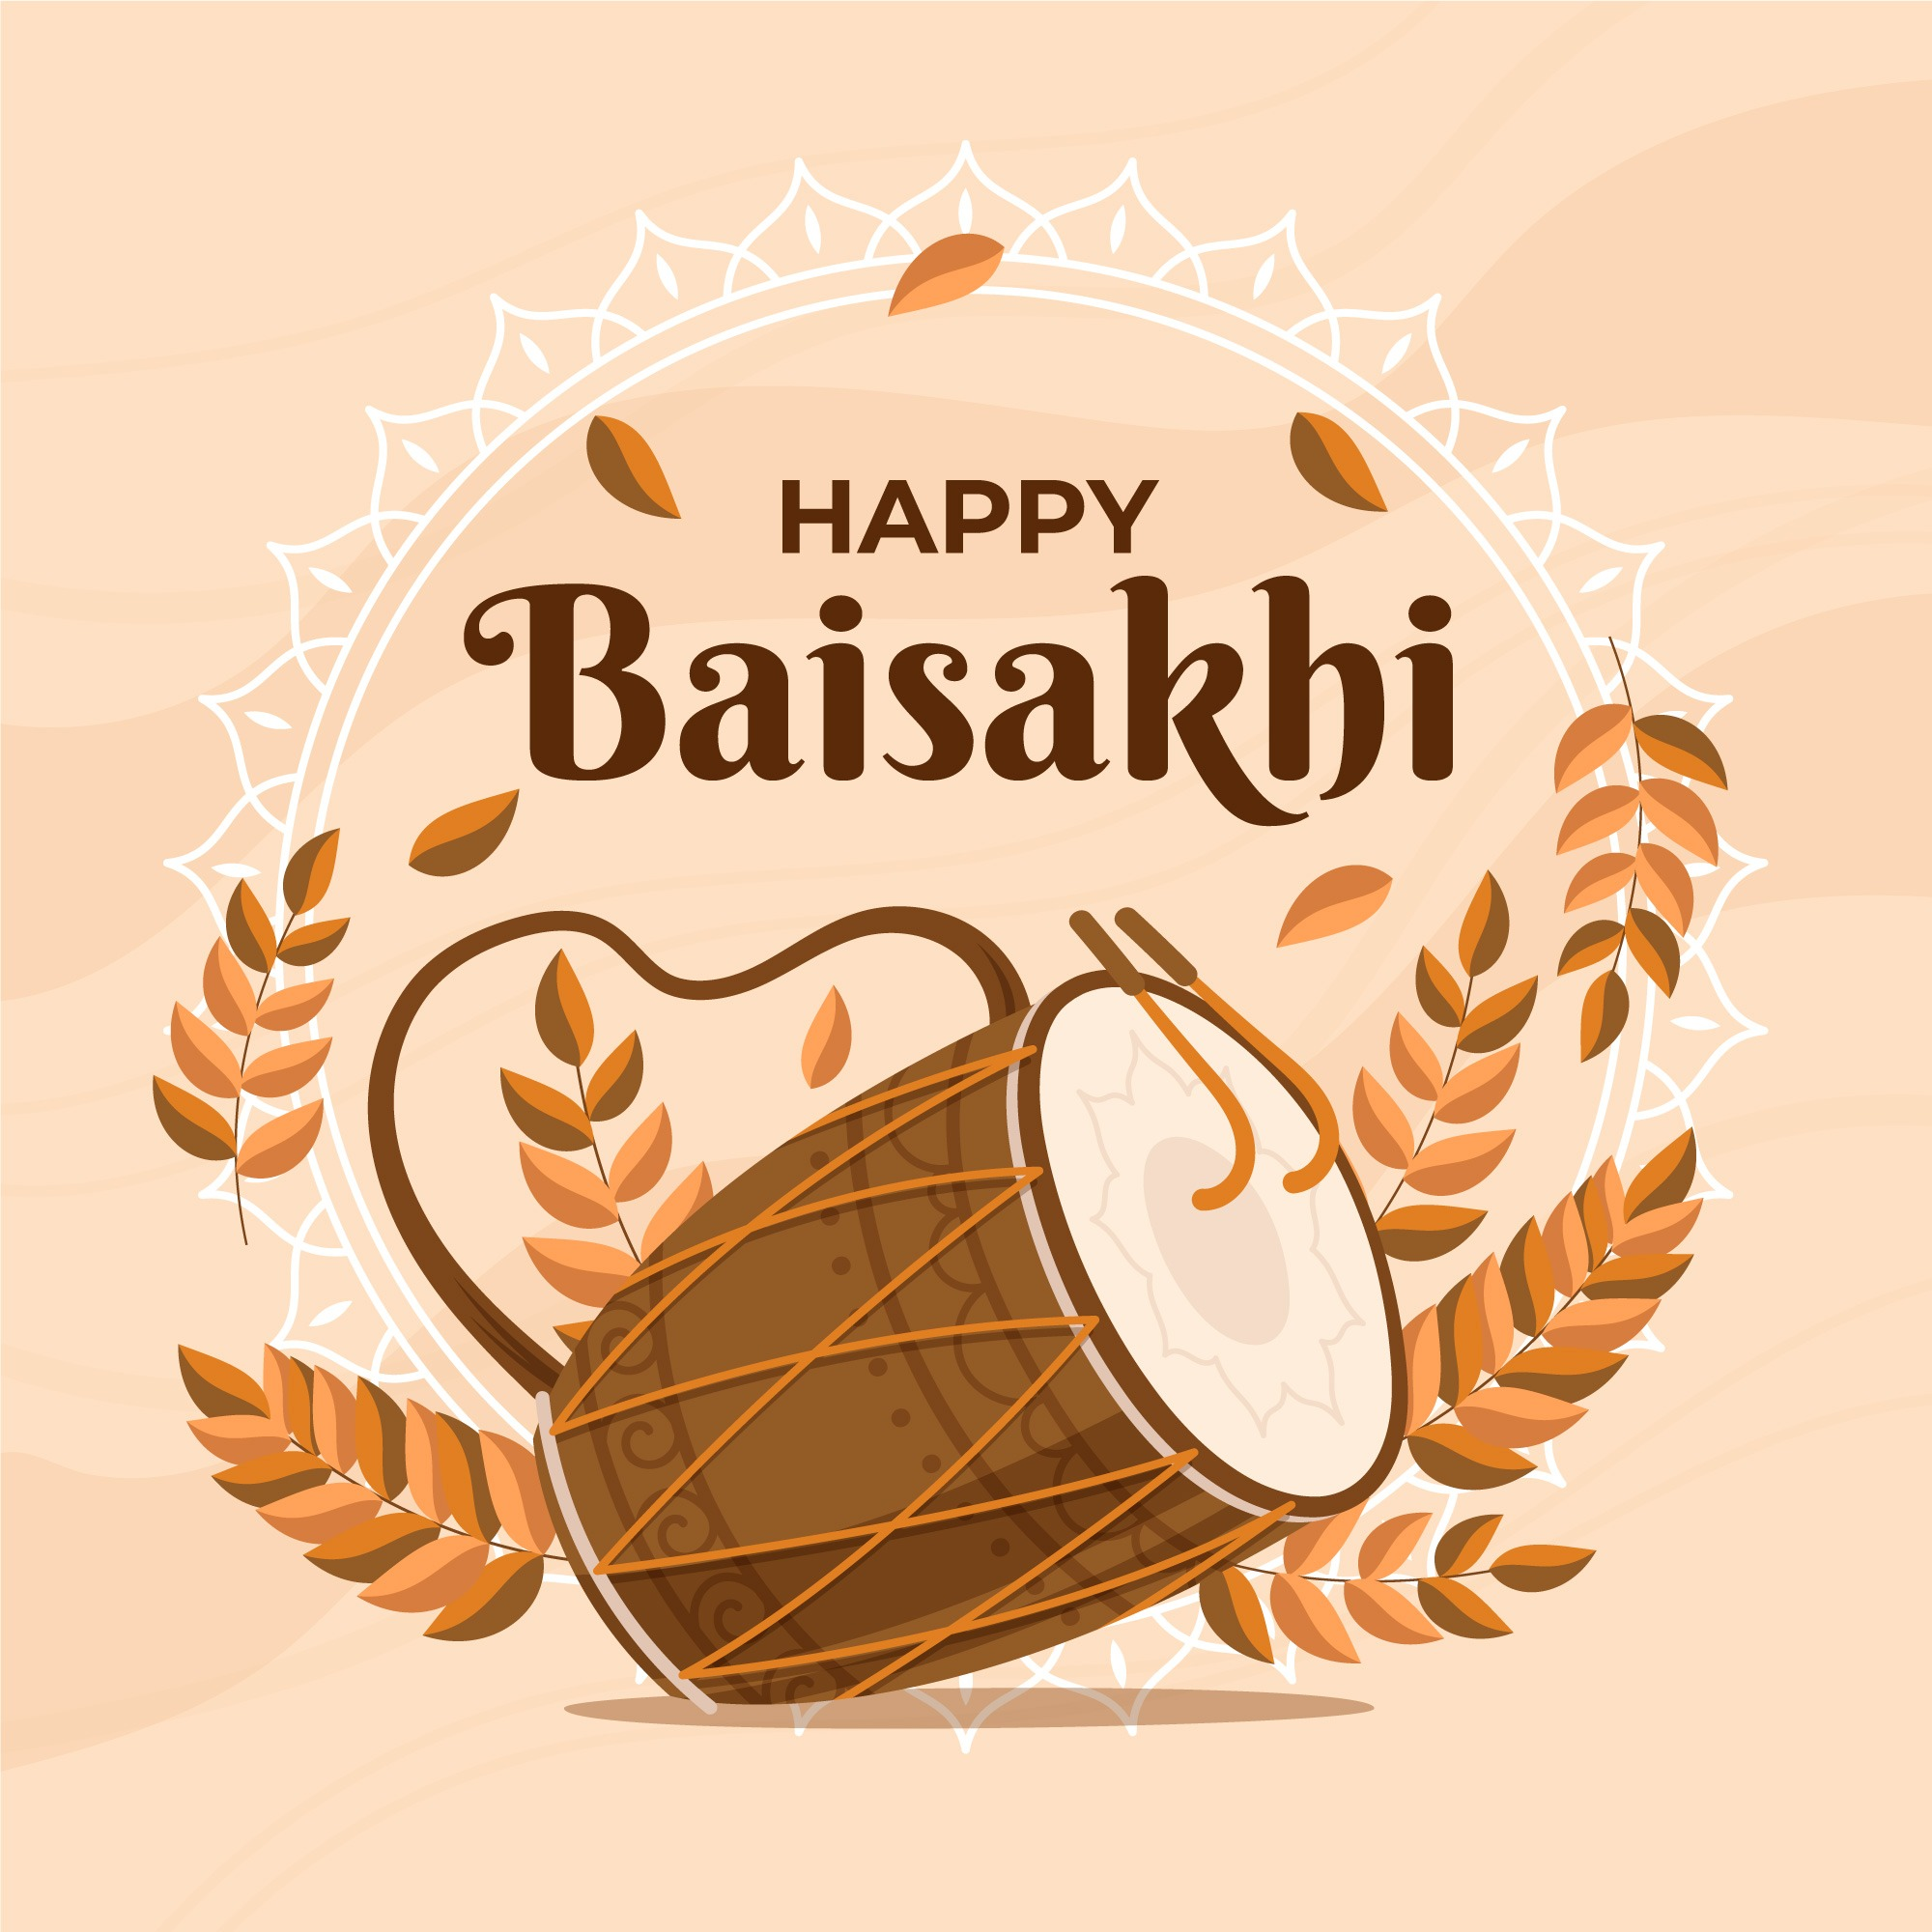 happy baisakhi photo download